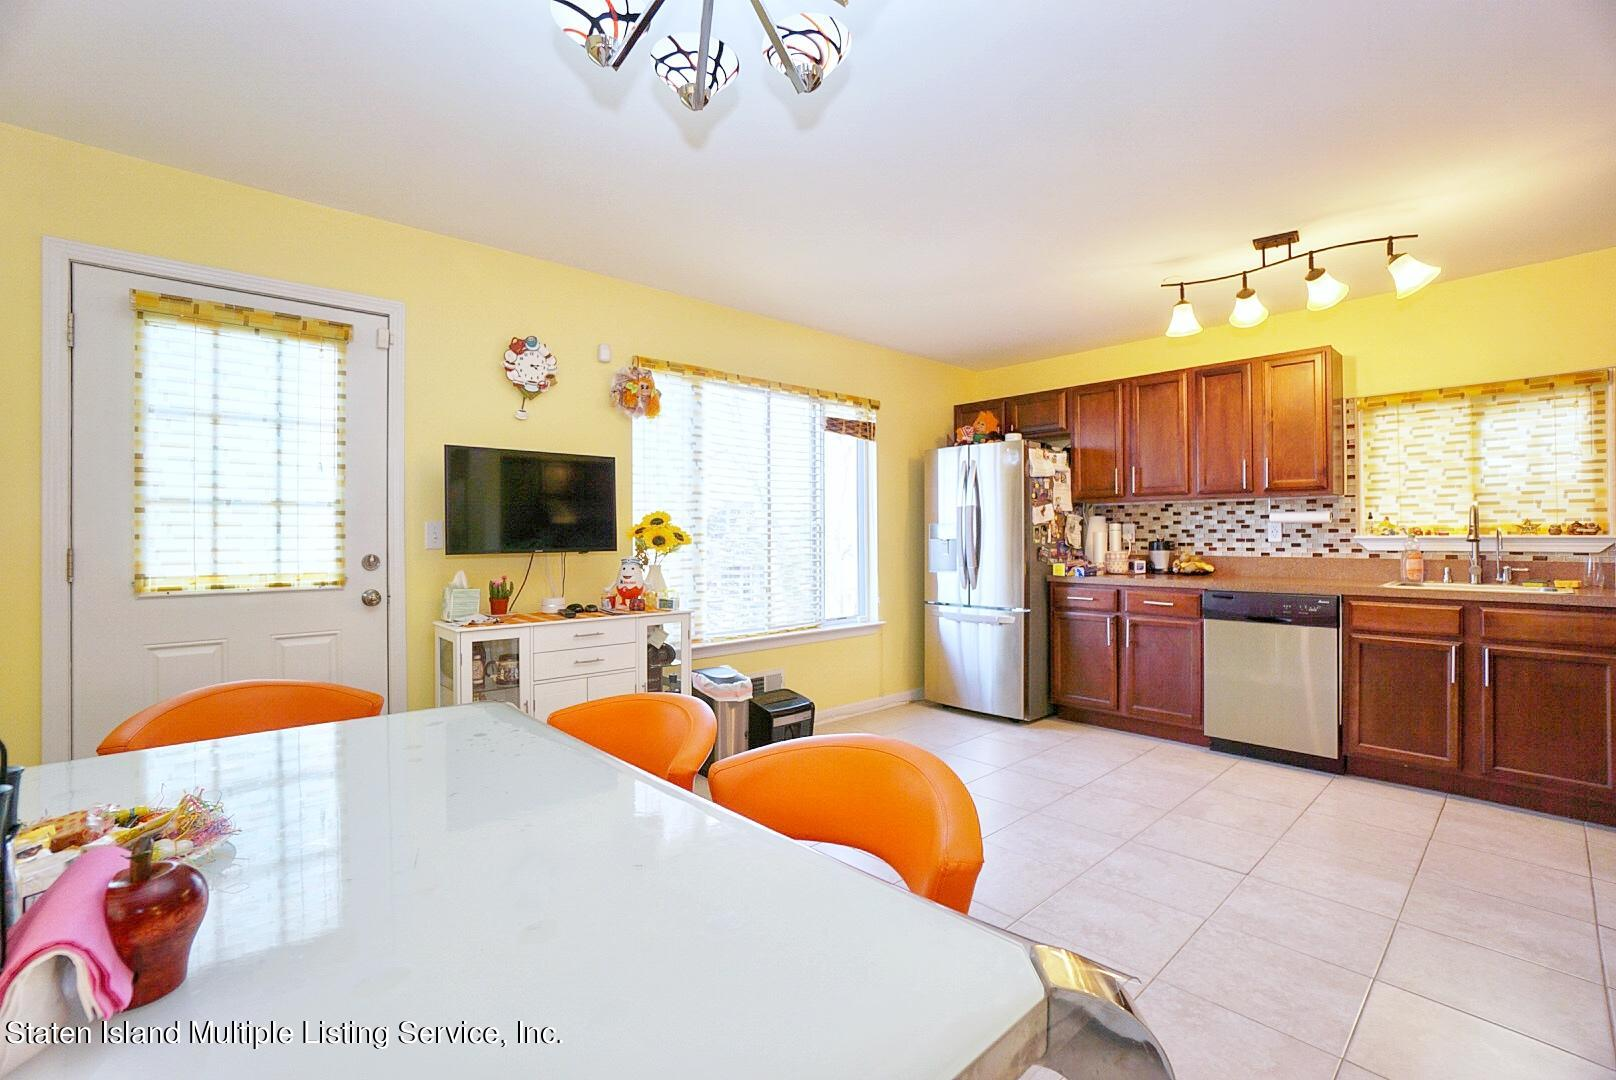 Single Family - Detached 171 Benziger Avenue  Staten Island, NY 10301, MLS-1145235-10